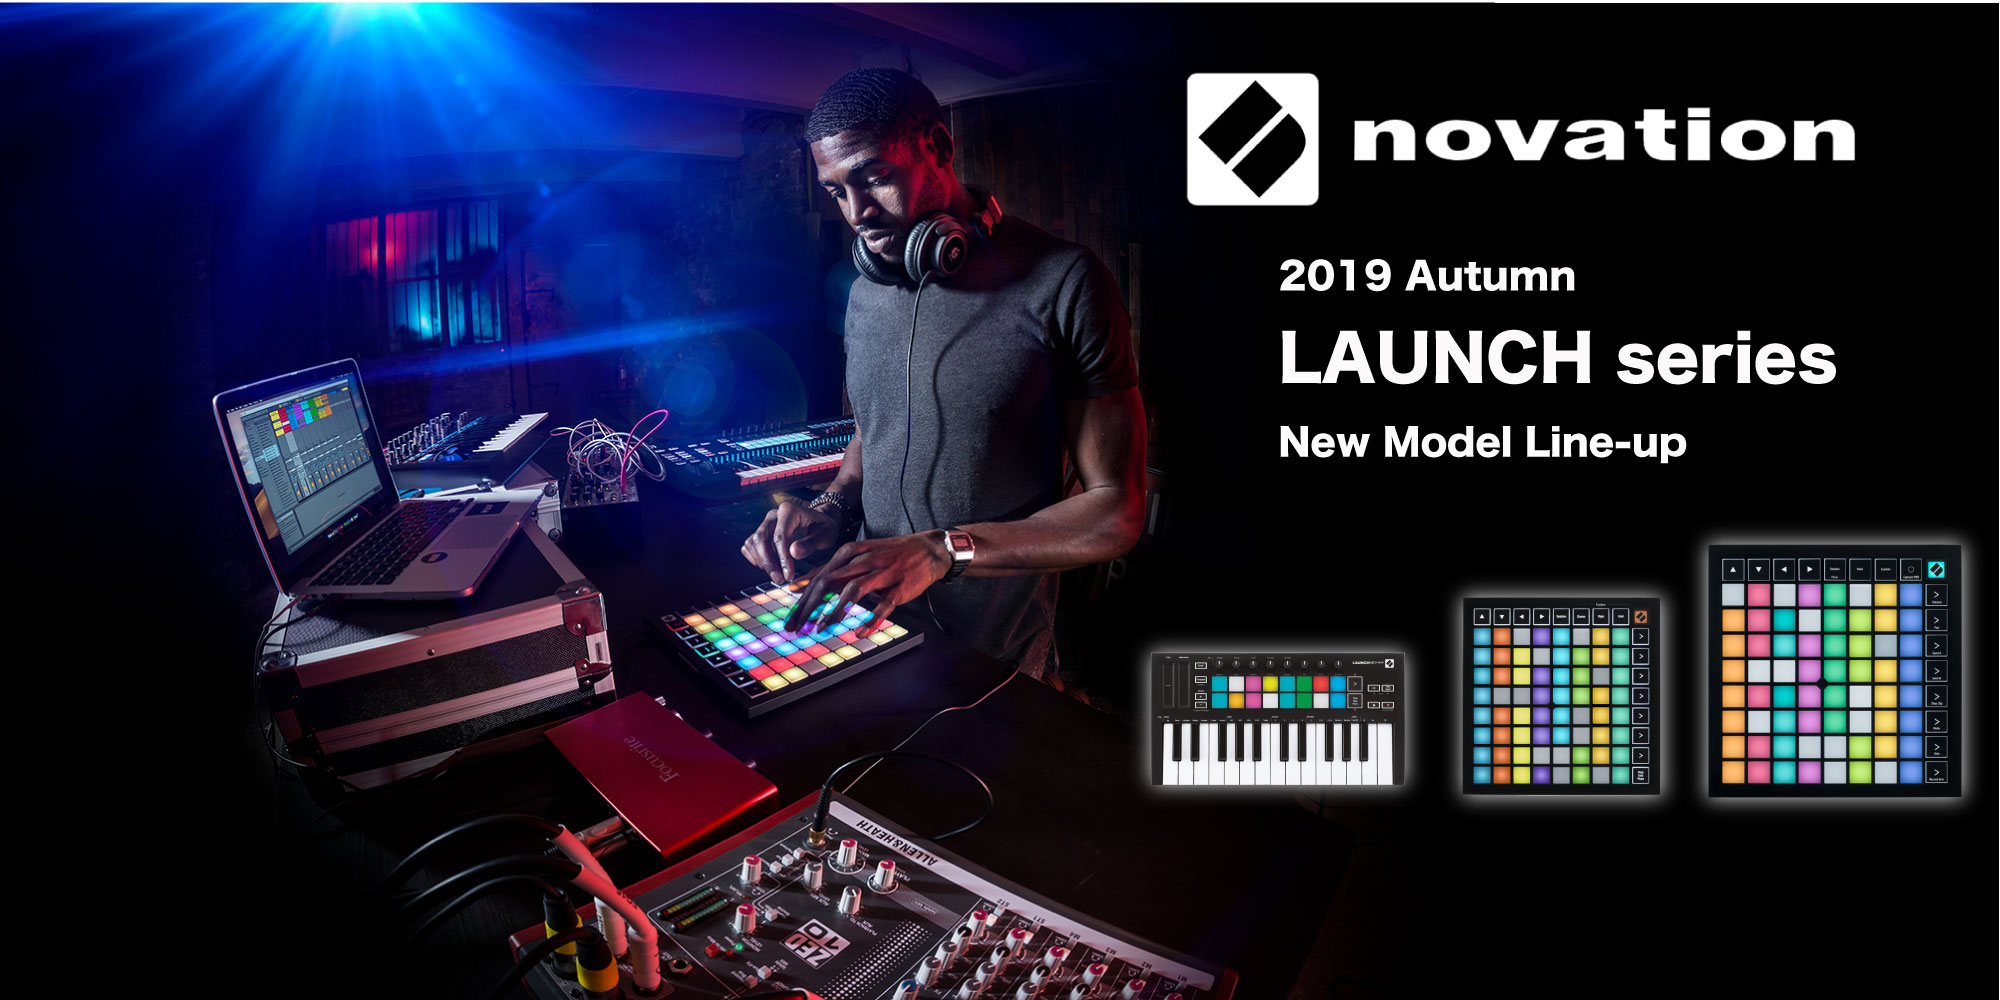 Novation-autumn-new-model-line-up